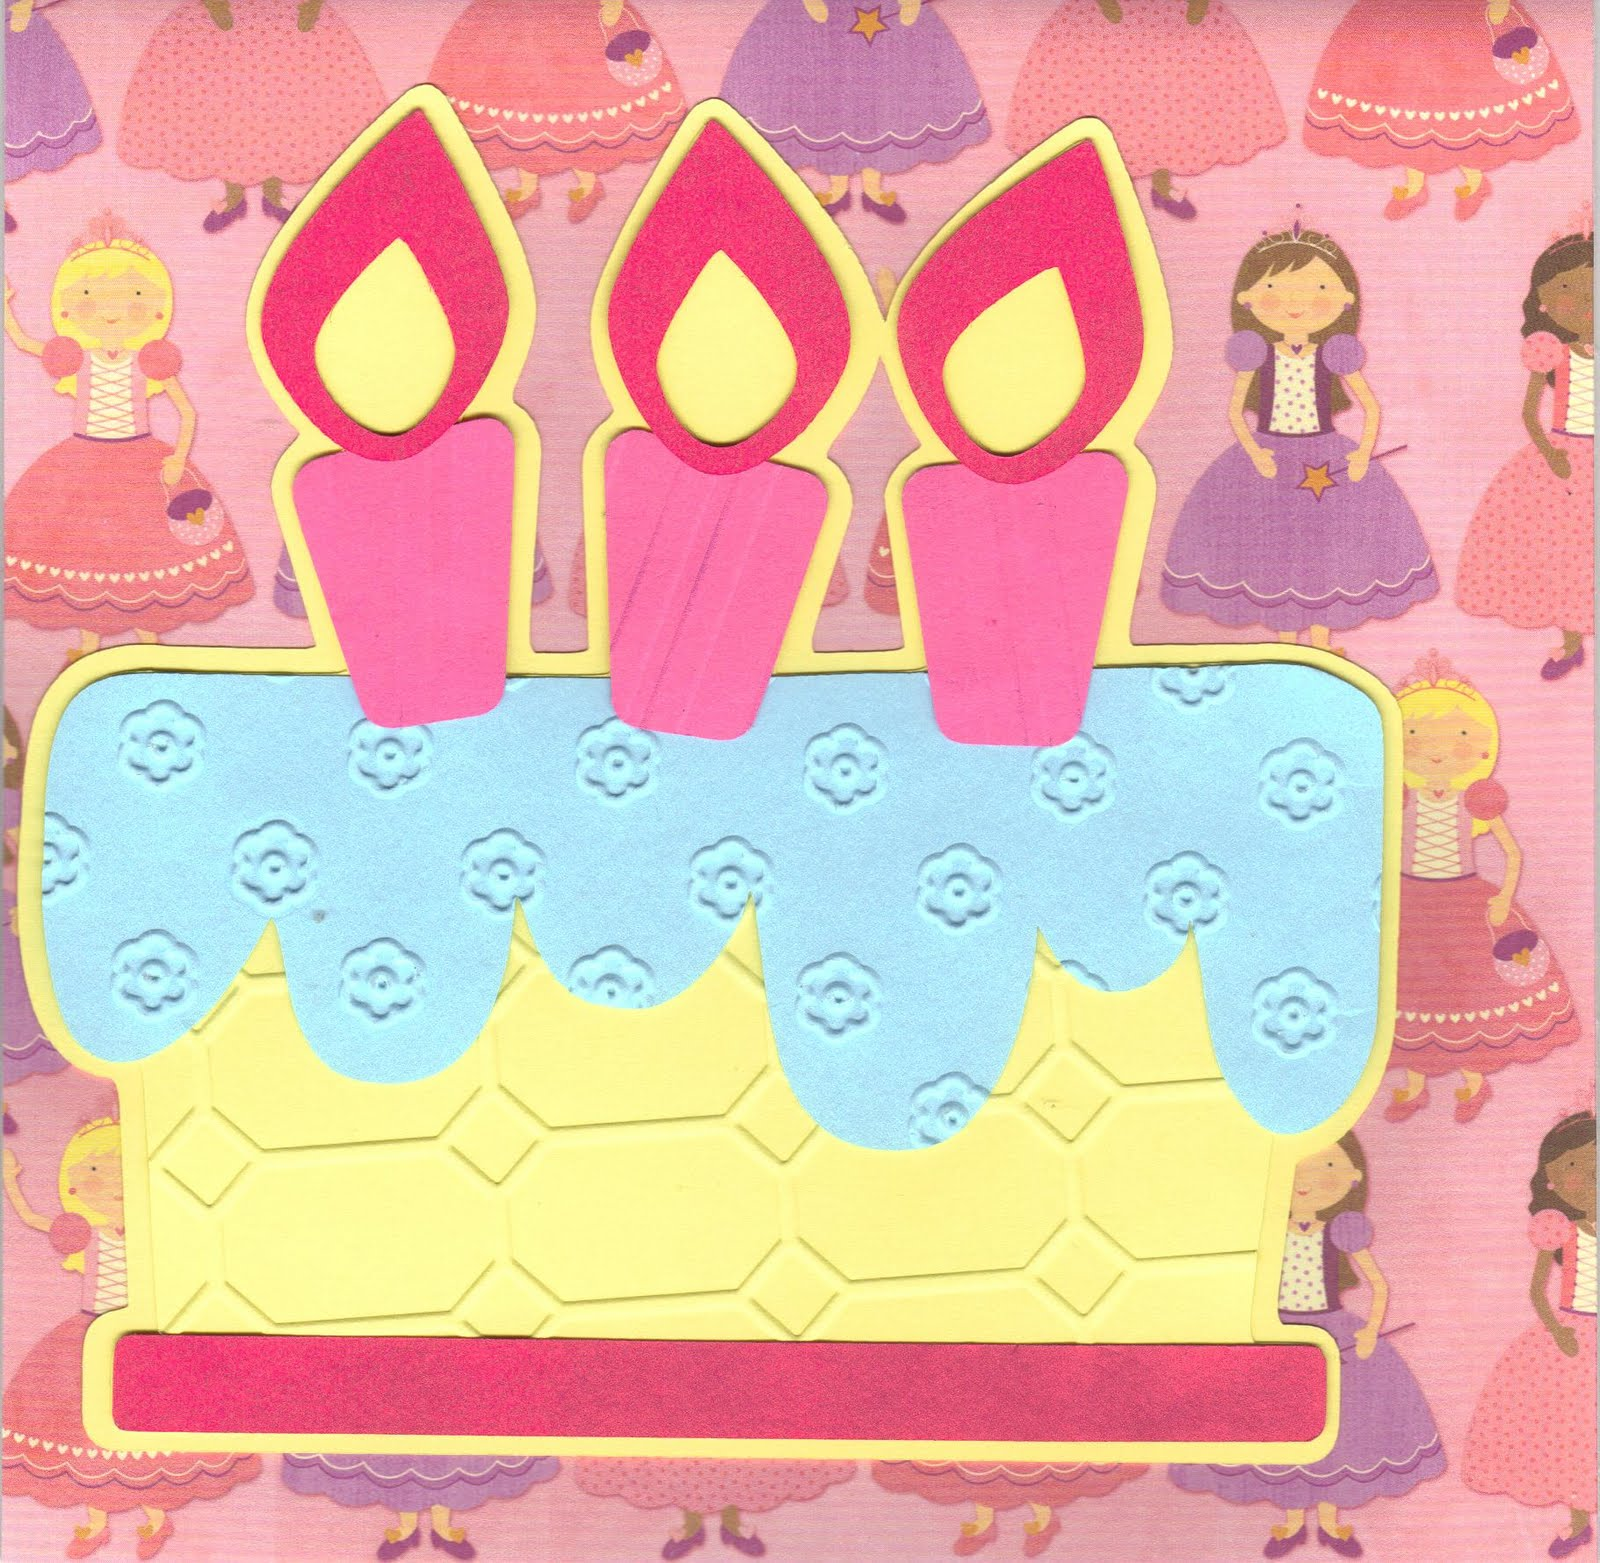 Pause dream enjoy today is bonnies birthday today is bonnies birthday publicscrutiny Image collections